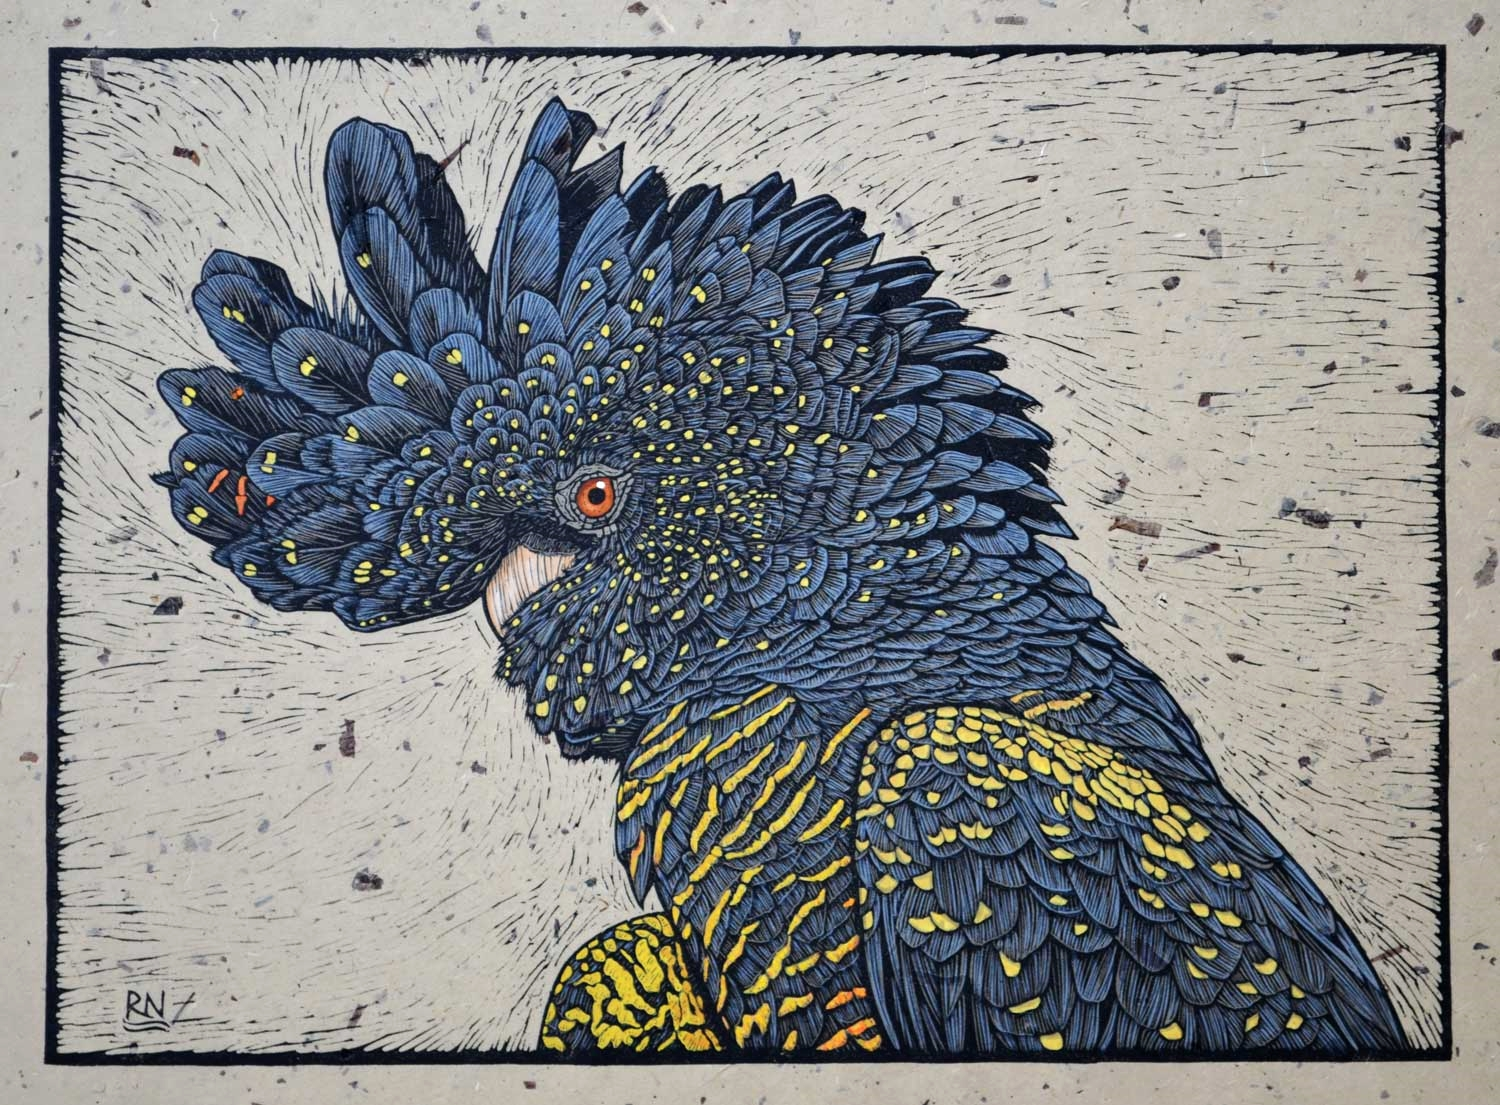 RED-TAILED BLACK COCKATOO PORTRAIT  37 X 50 CM, EDITION OF 50  HAND-COLOURED LINOCUT ON HANDMADE JAPANESE PAPER  $1,100